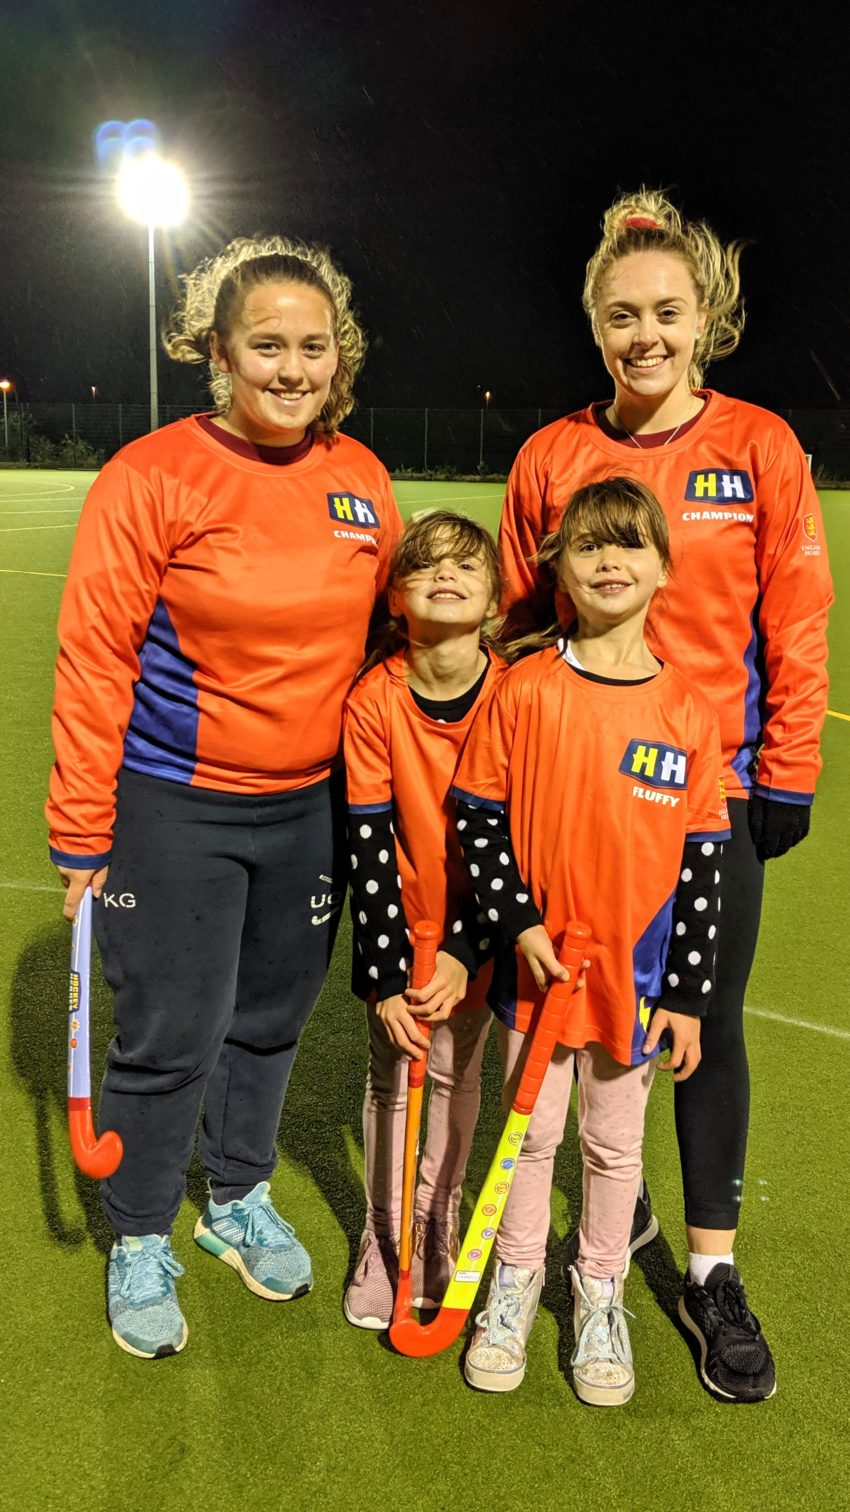 Hockey Heroes with their Hockey Champions at the end of a training session with England Hockey's Hockey Heroes programme